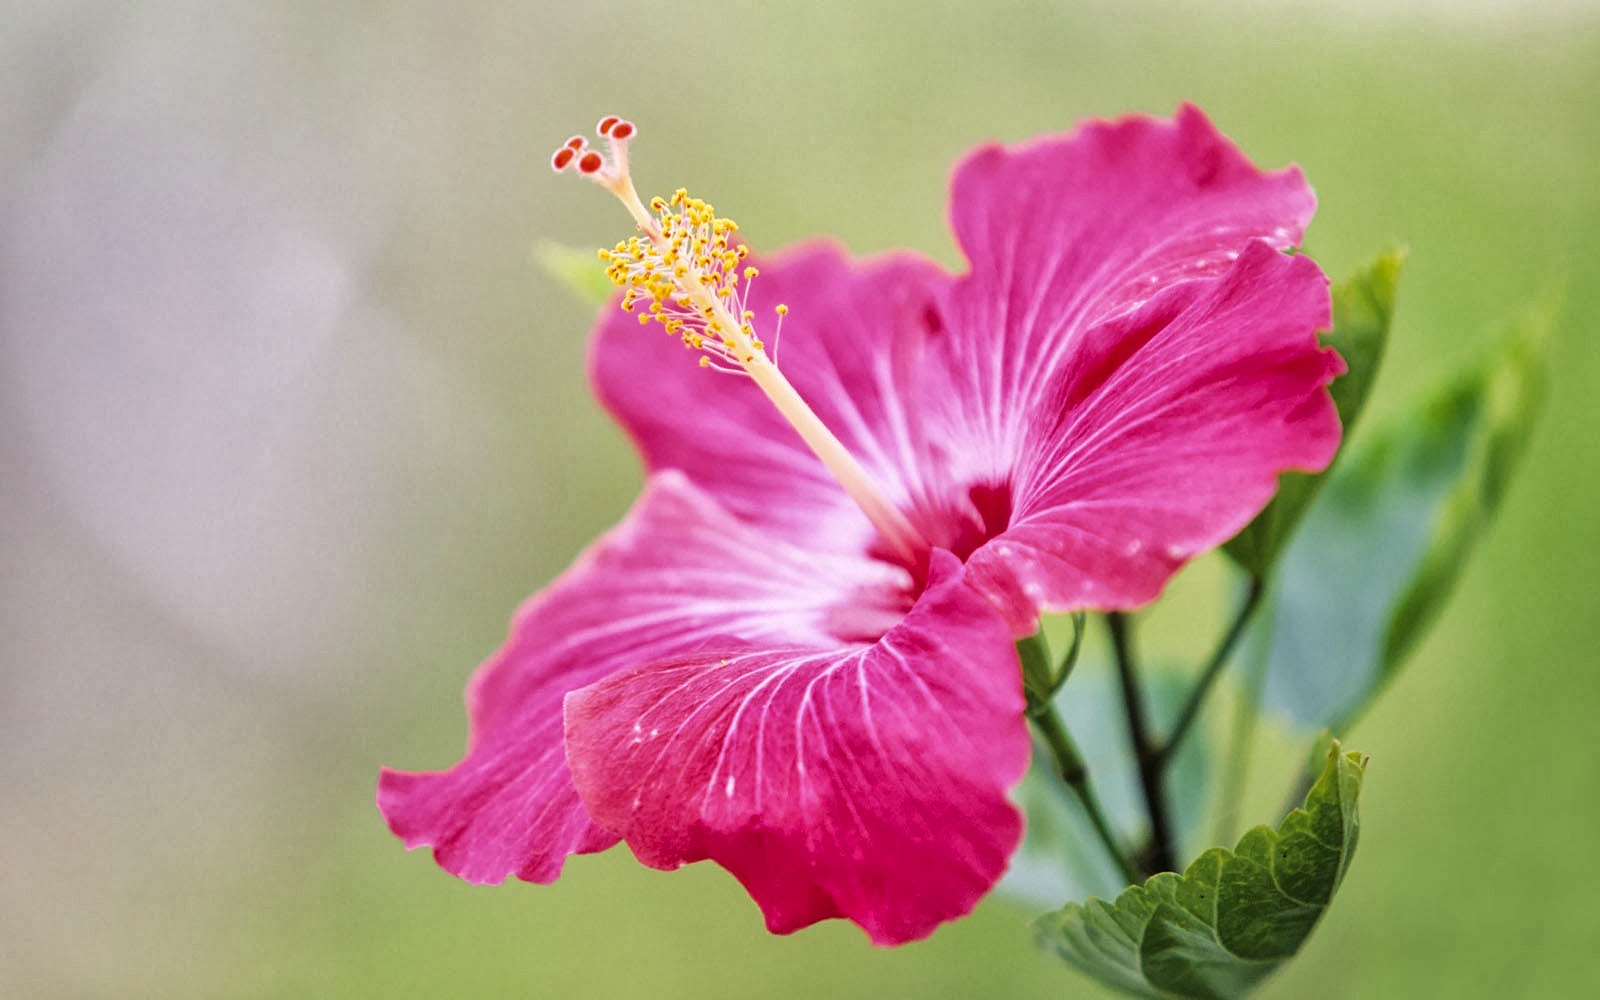 Wallpapers pink hibiscus flower wallpapers - Red flower desktop wallpaper ...